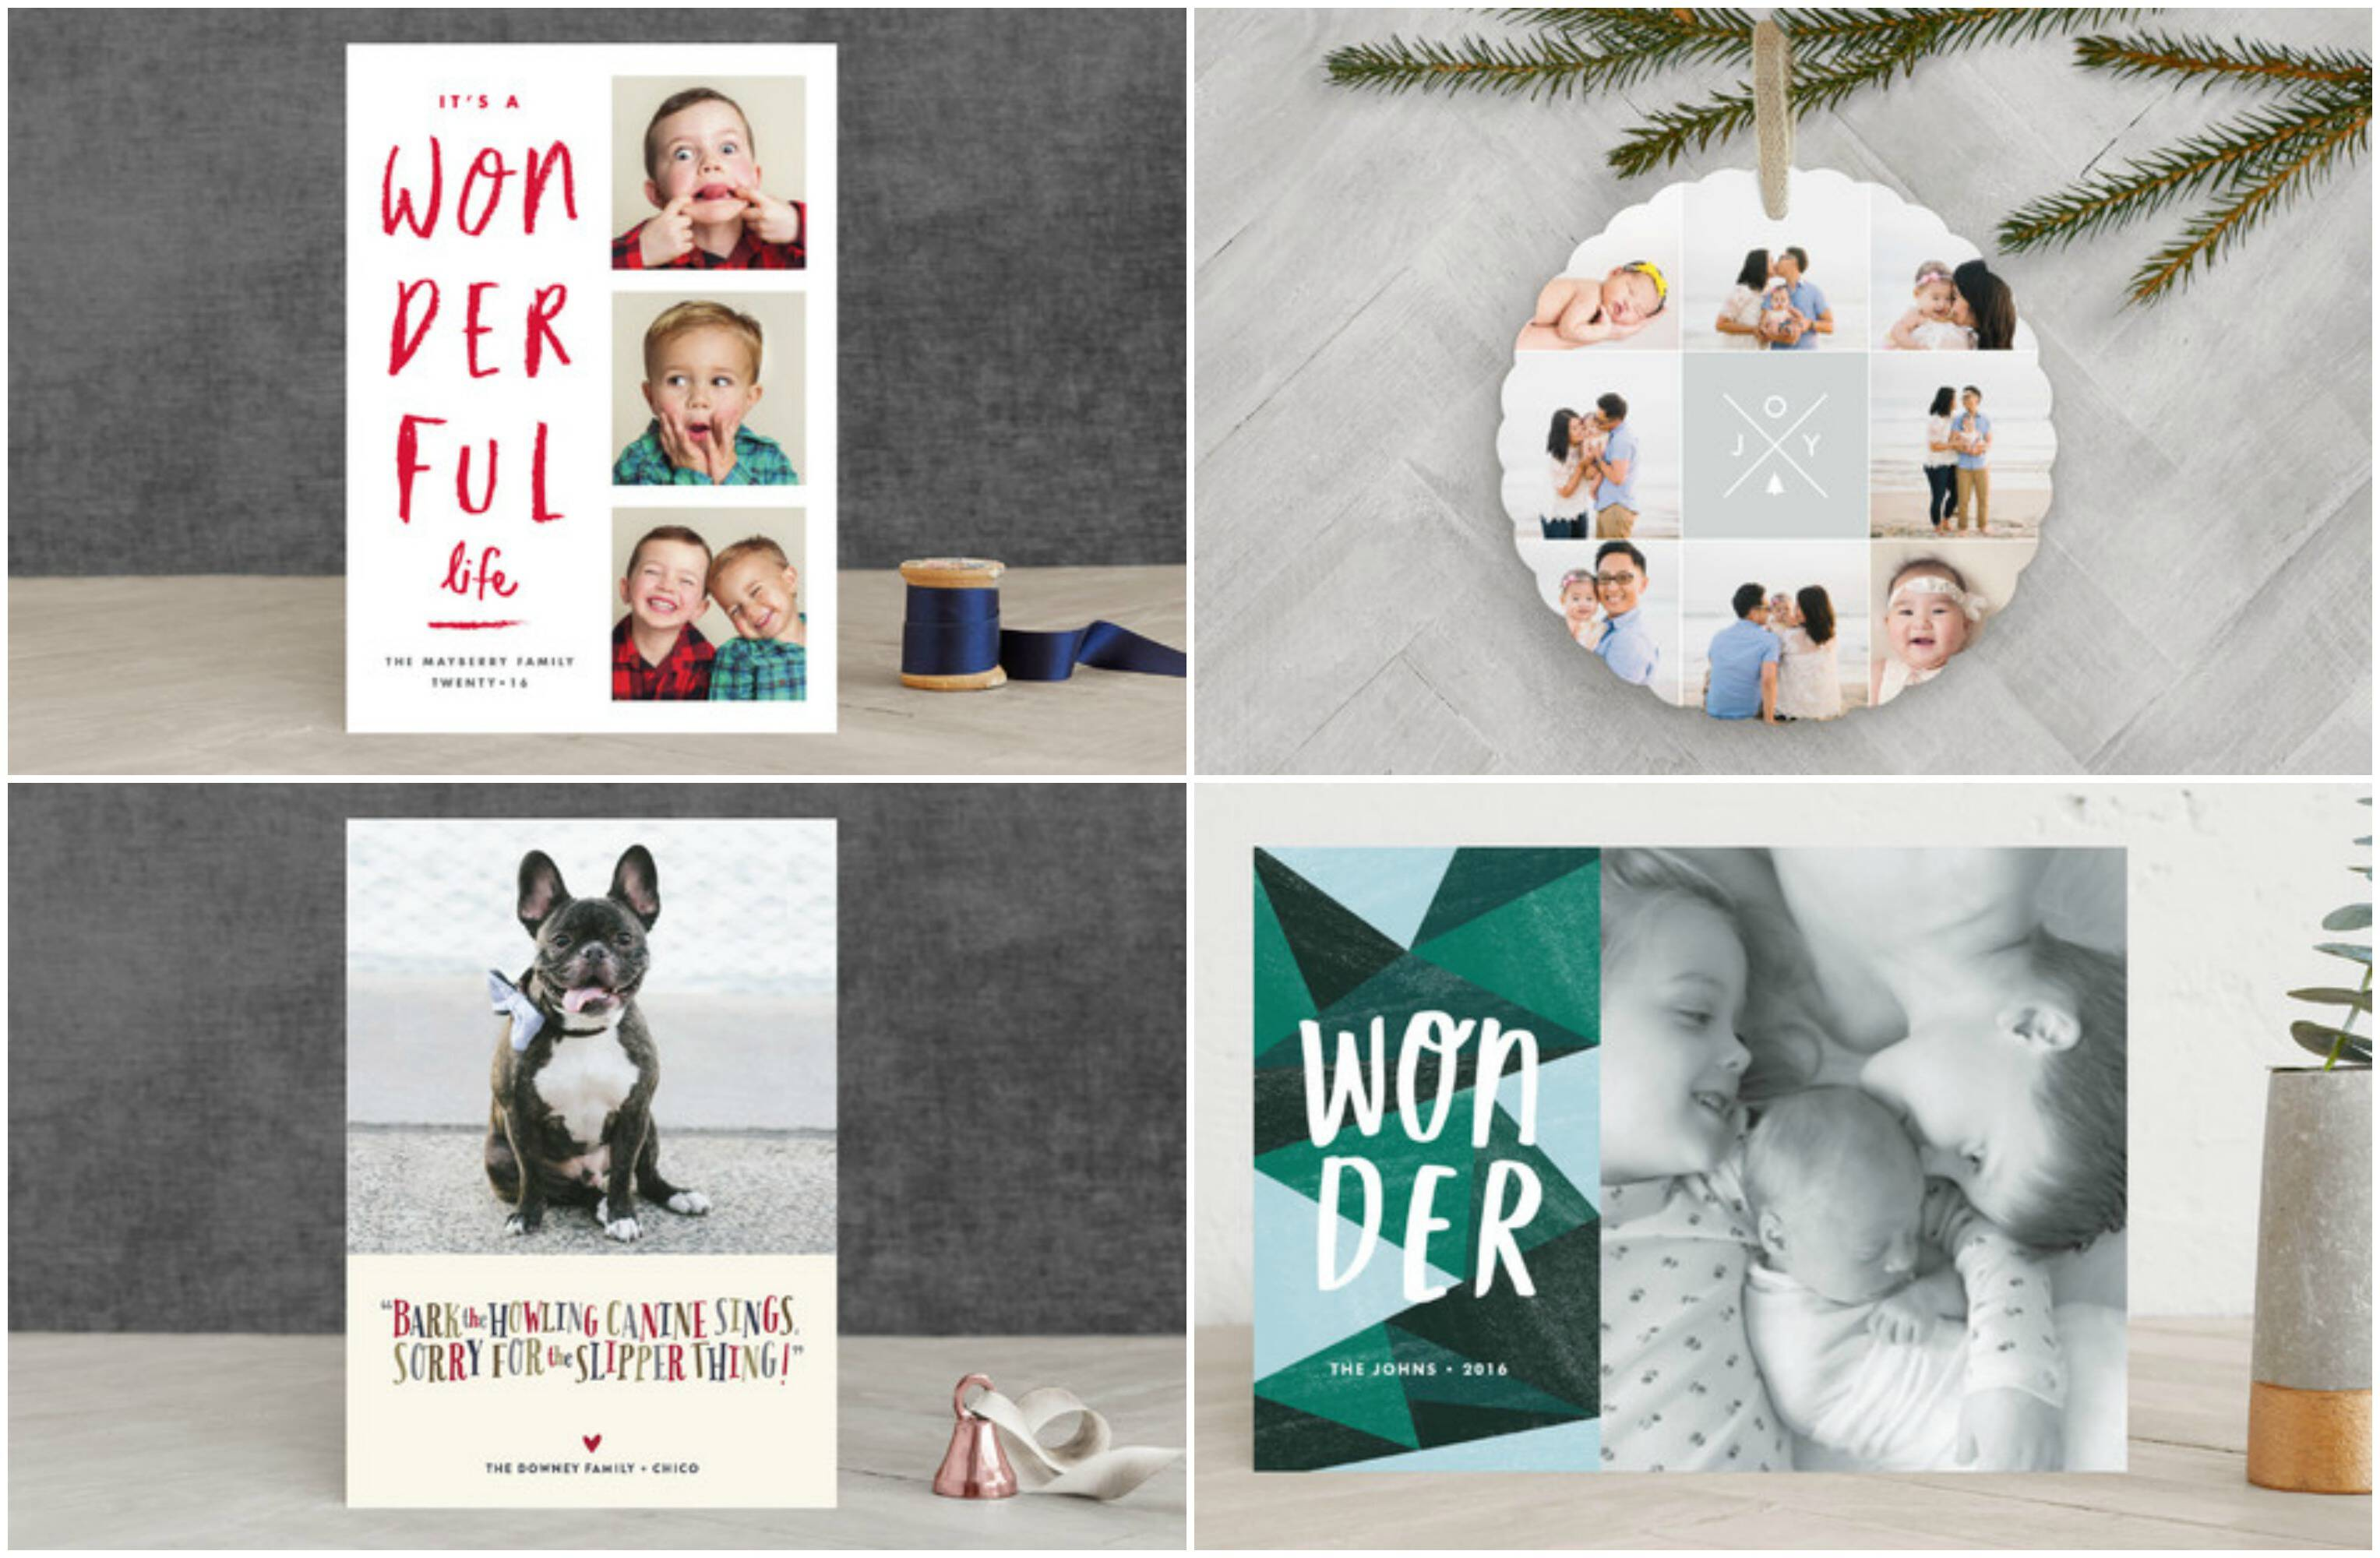 Looking for unique, gorgeous, and really special cards this year? Order your holiday cards from Minted.com! They have a beautiful selection in many styles.